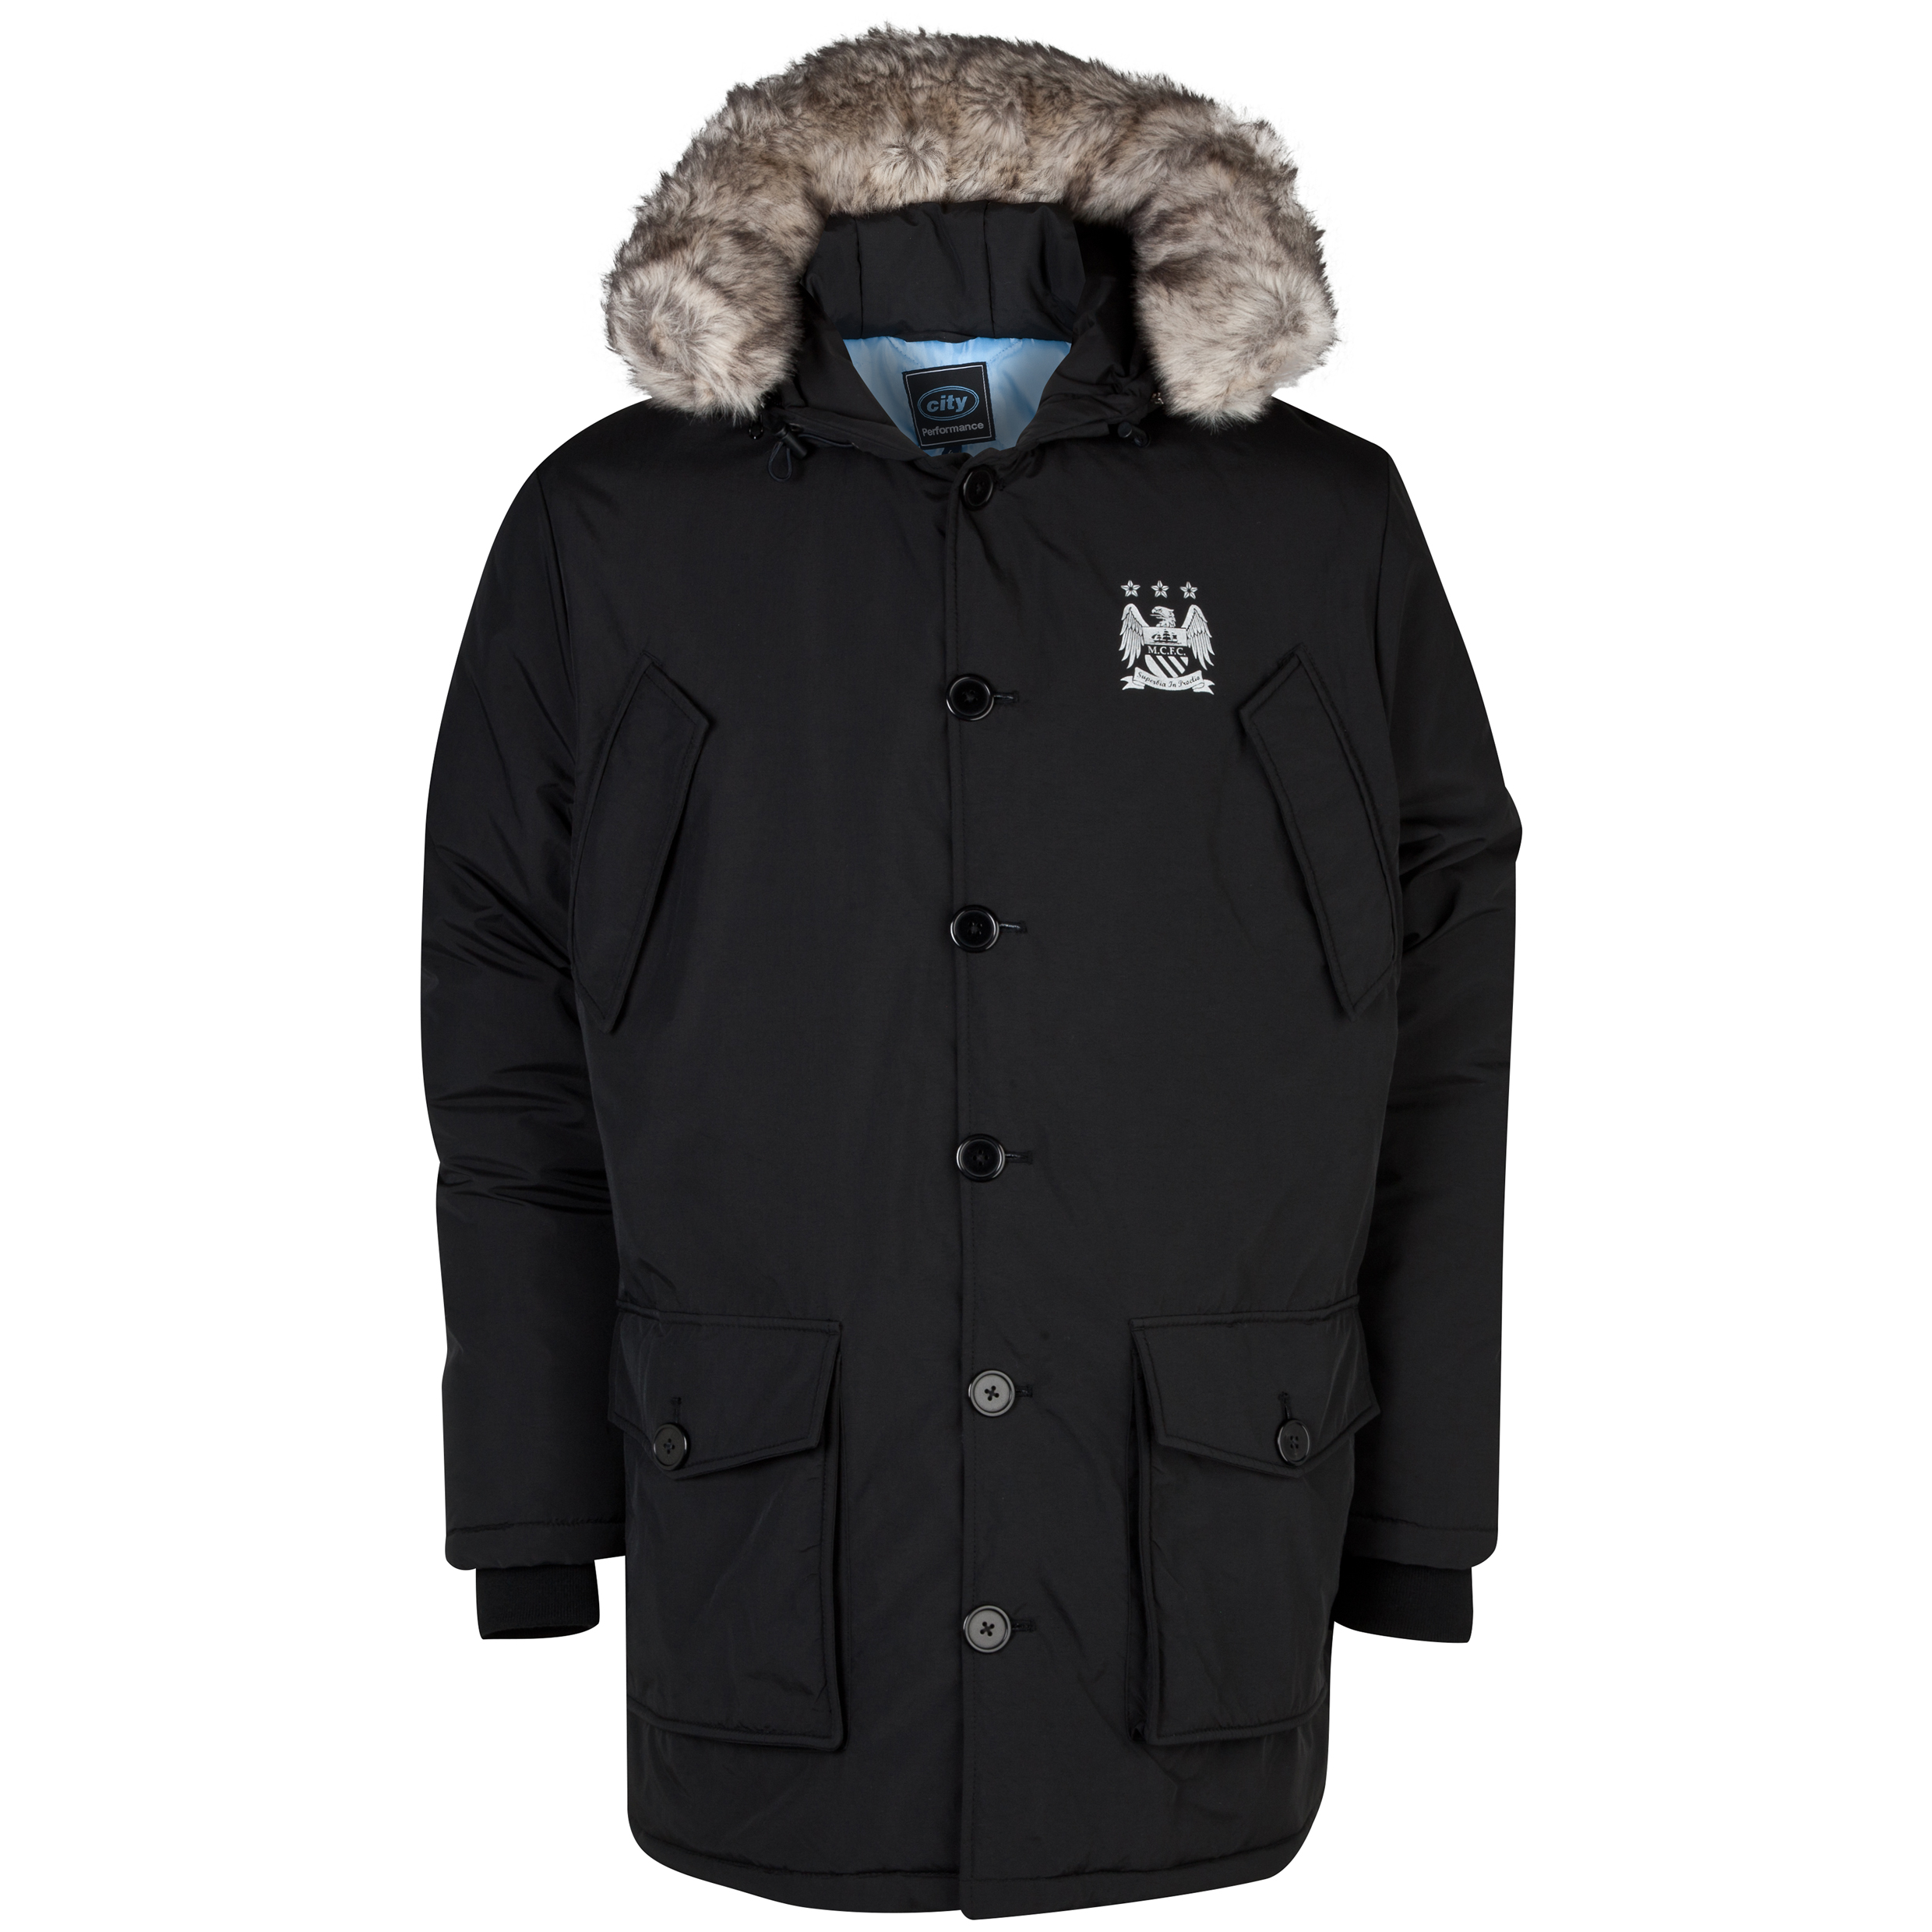 Manchester City Performance Drake Coat - Mens Black